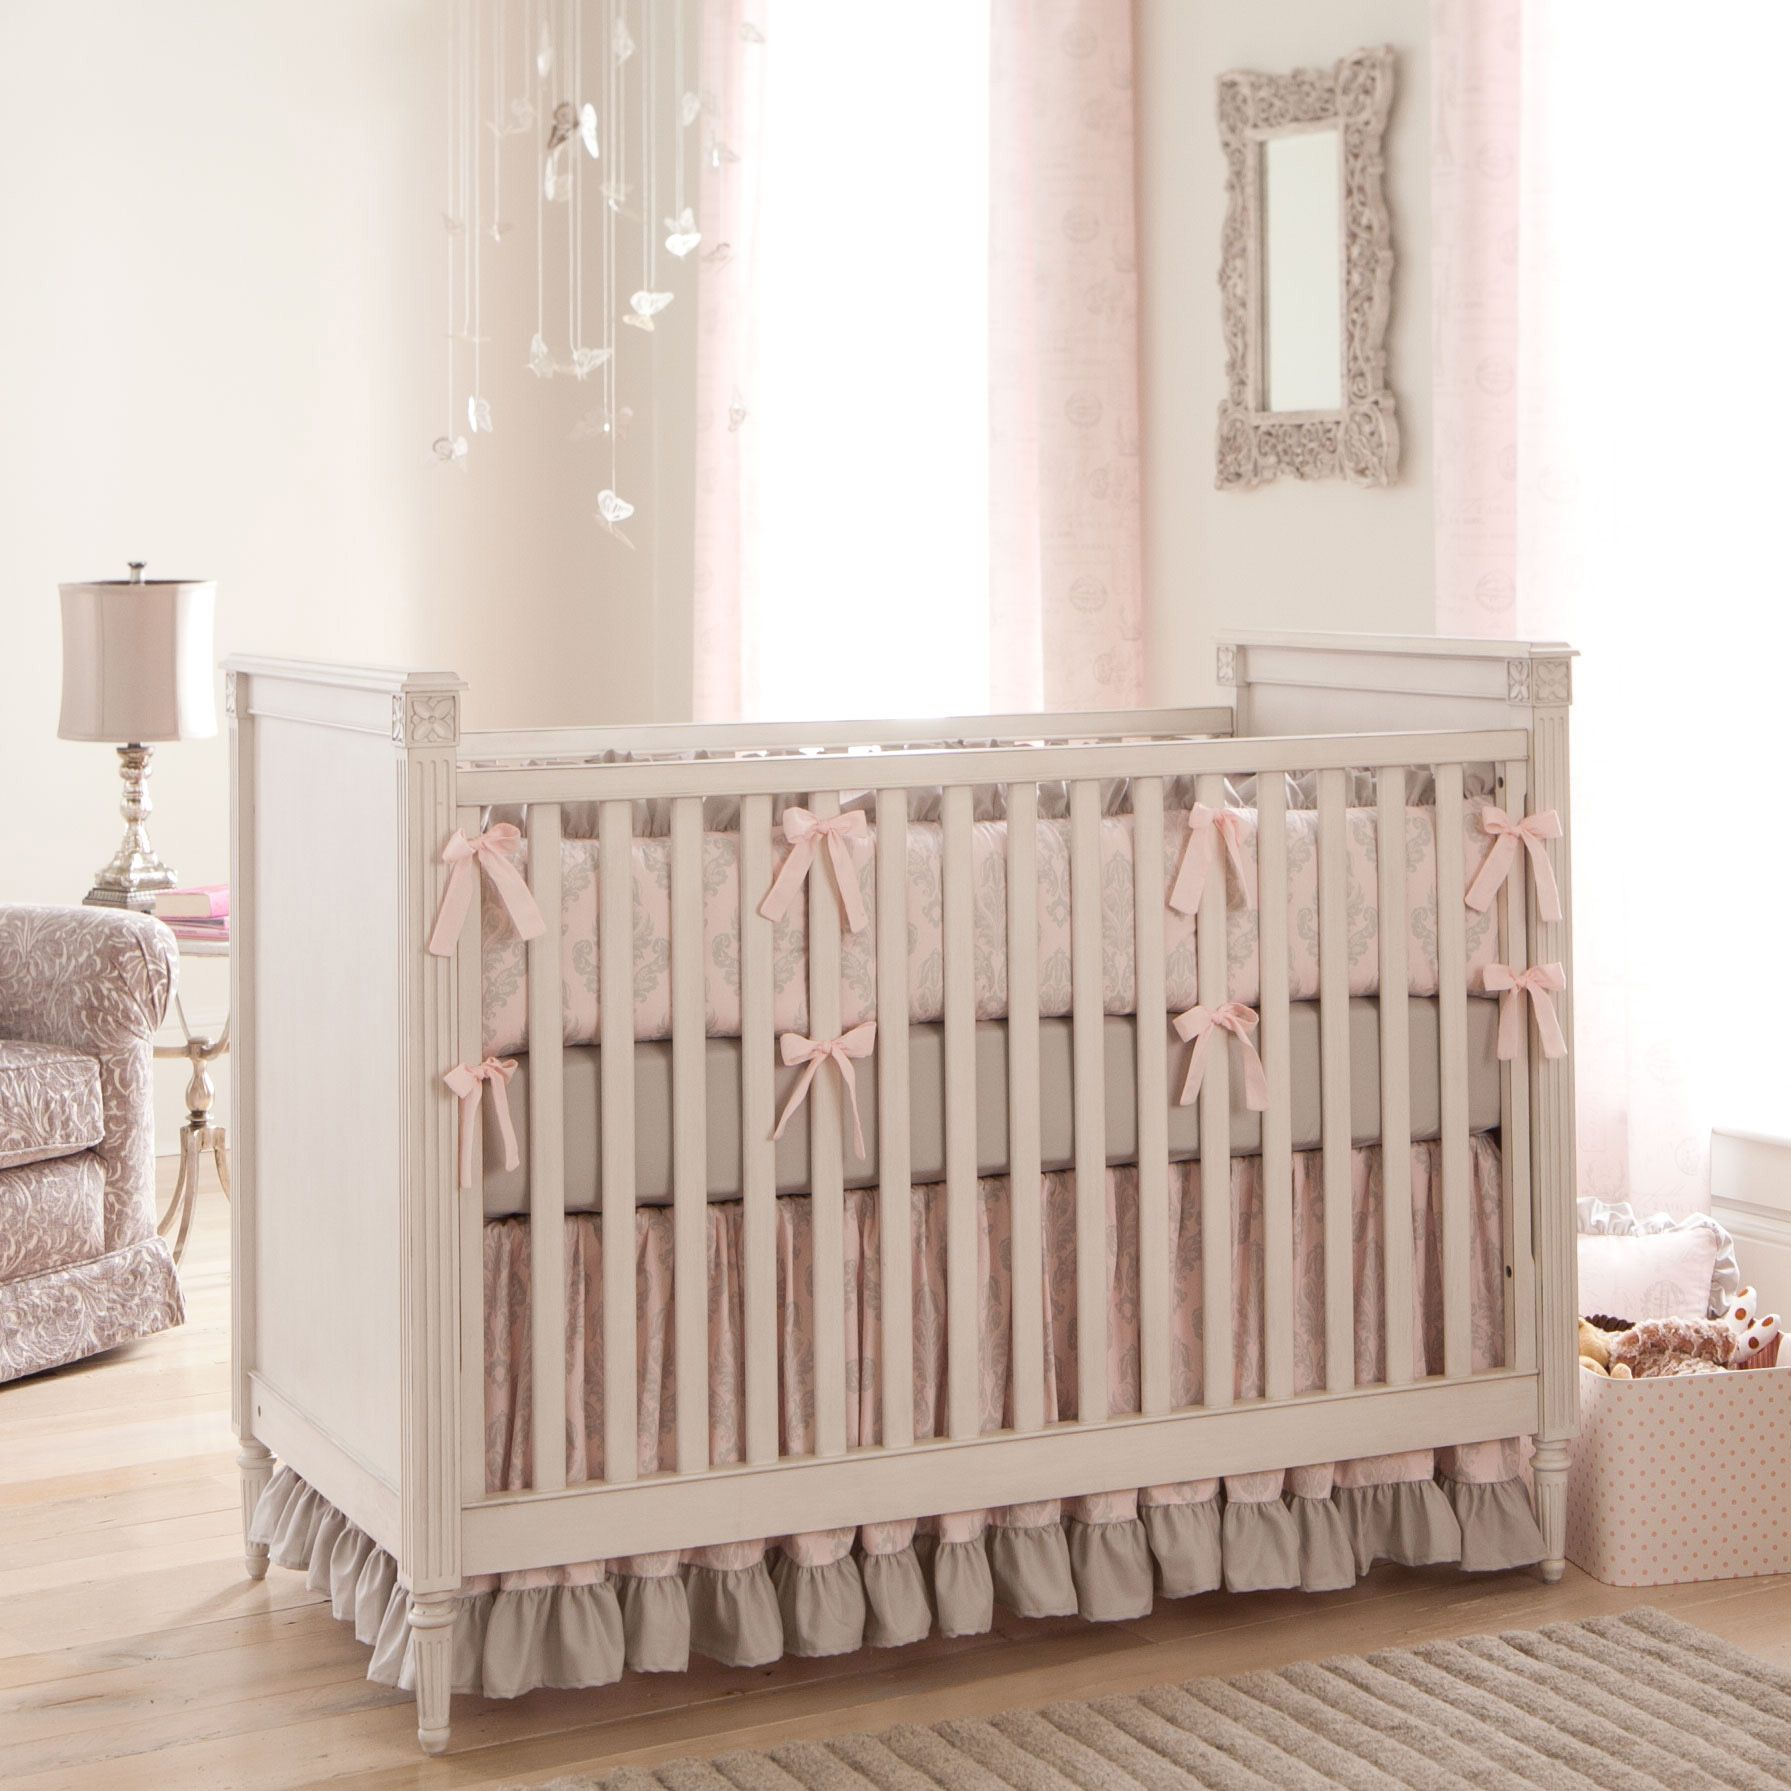 ideas babies monkey gle your butterfly to sets a animal mouse of for orating designs liquida girl size ora girls glenna jean piece disney baby coupon owl set neutral borns kingdom walm keep full dreams blogs bedding nursery ways cribs just addison crib collection minnie